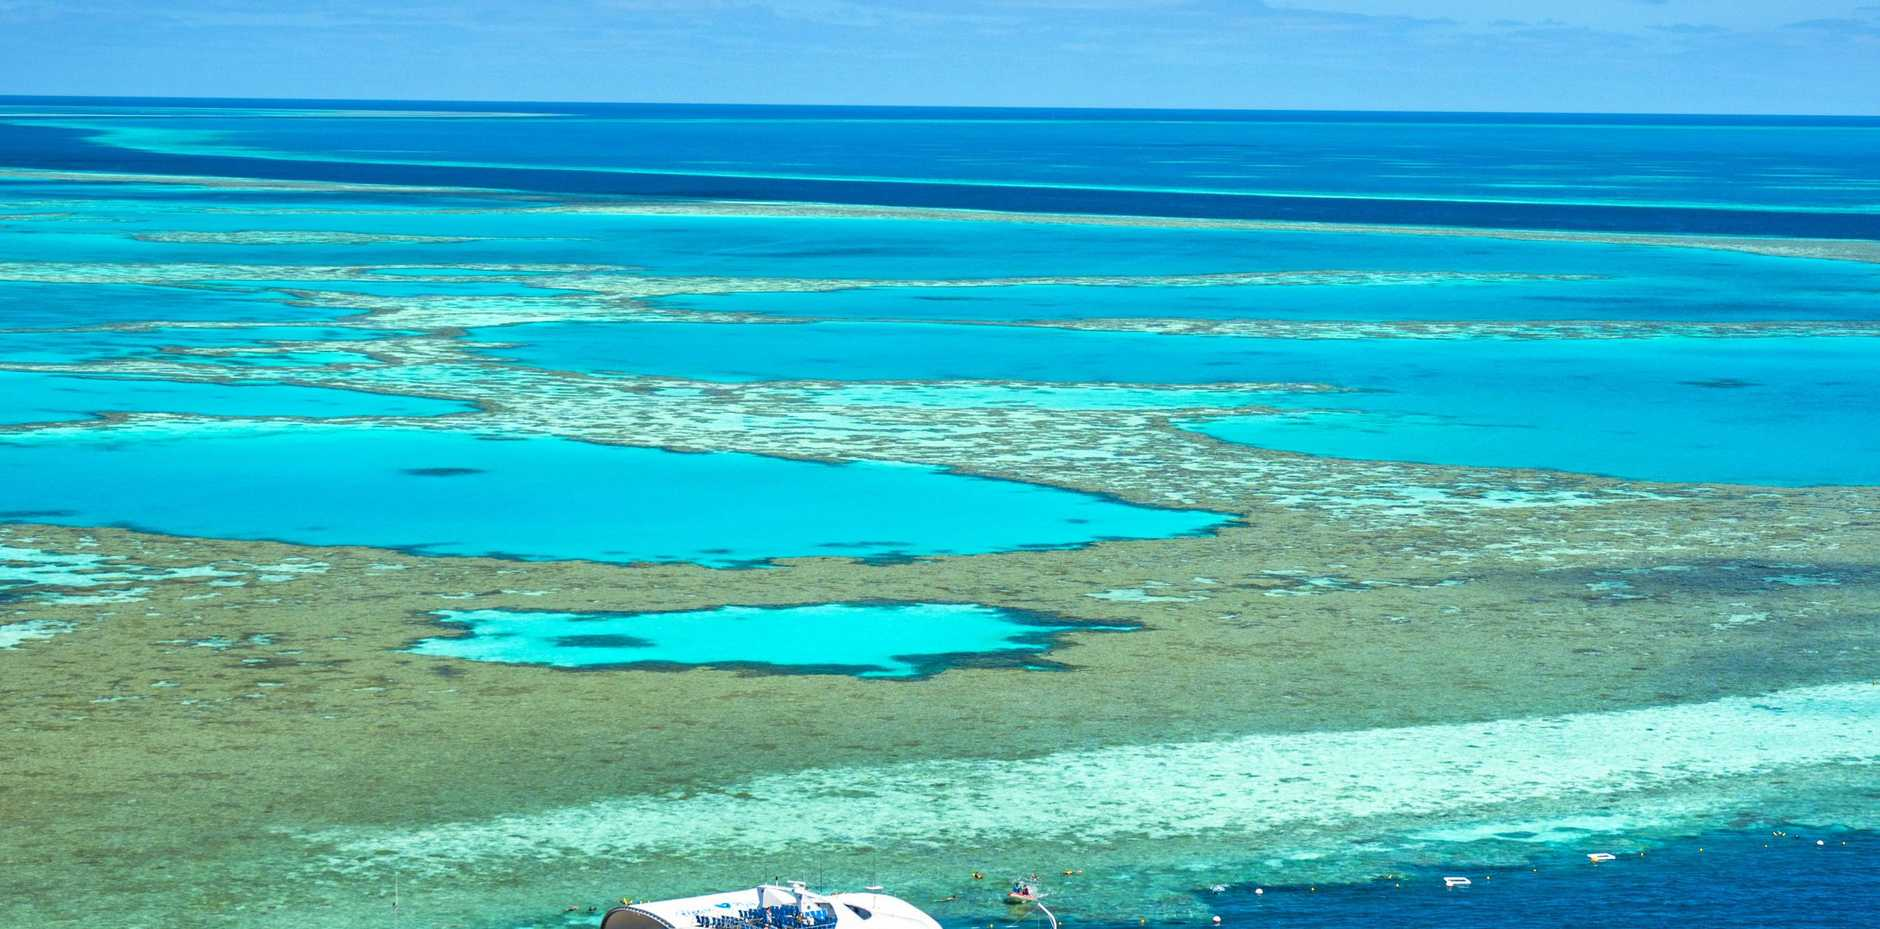 SAVE THE REEF: Reduced land runoff could help preserve the Great Barrier Reef.